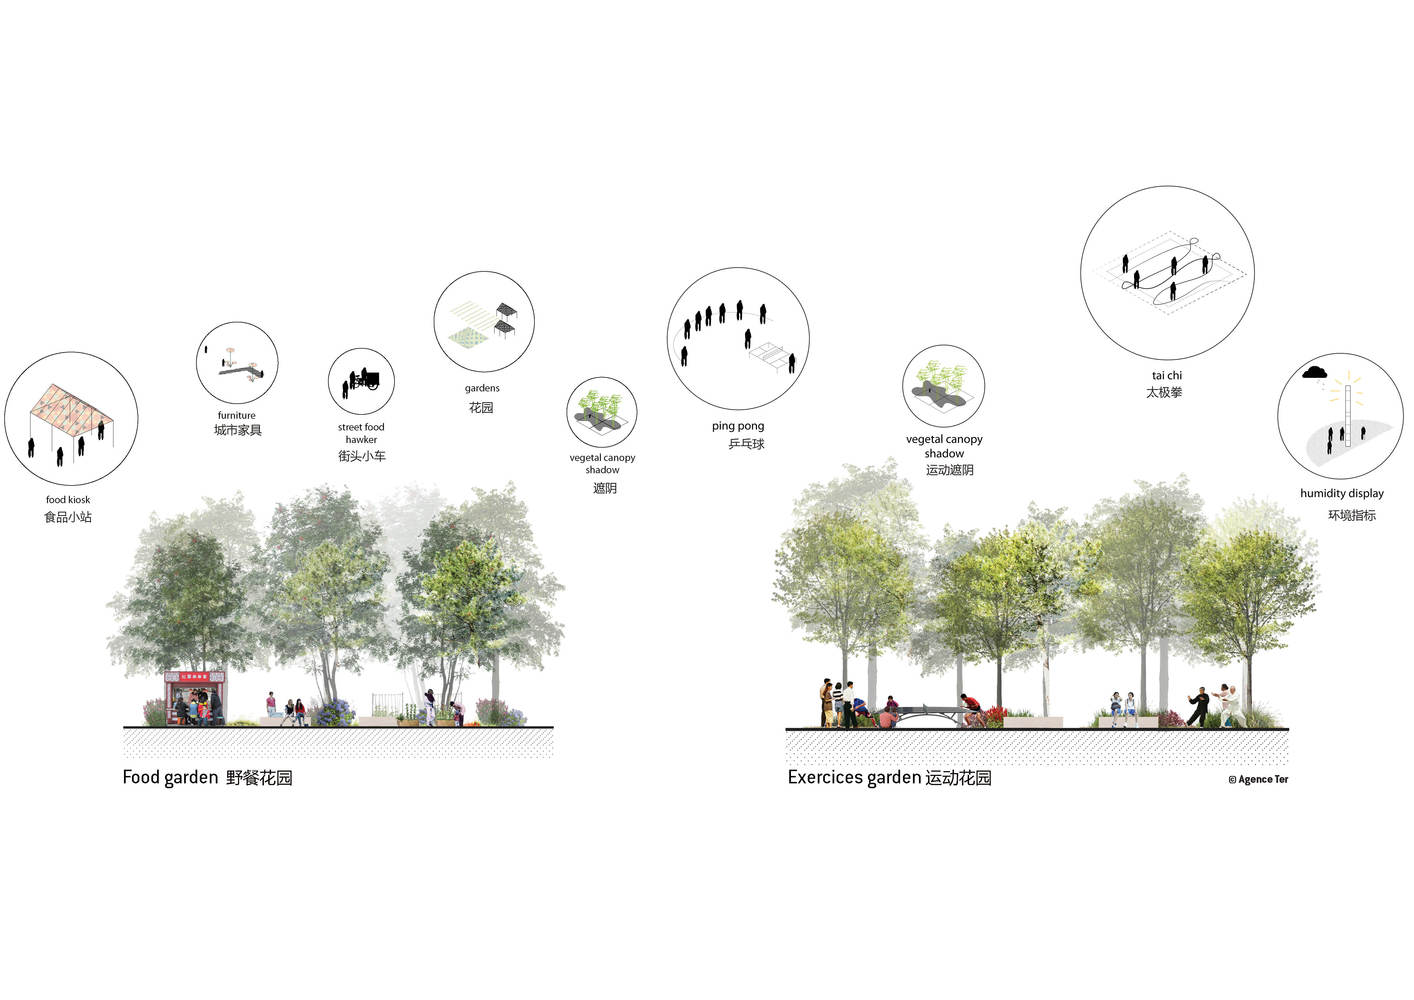 Gallery of Agence Ter Proposes 350 Hectares of Parkland ... on